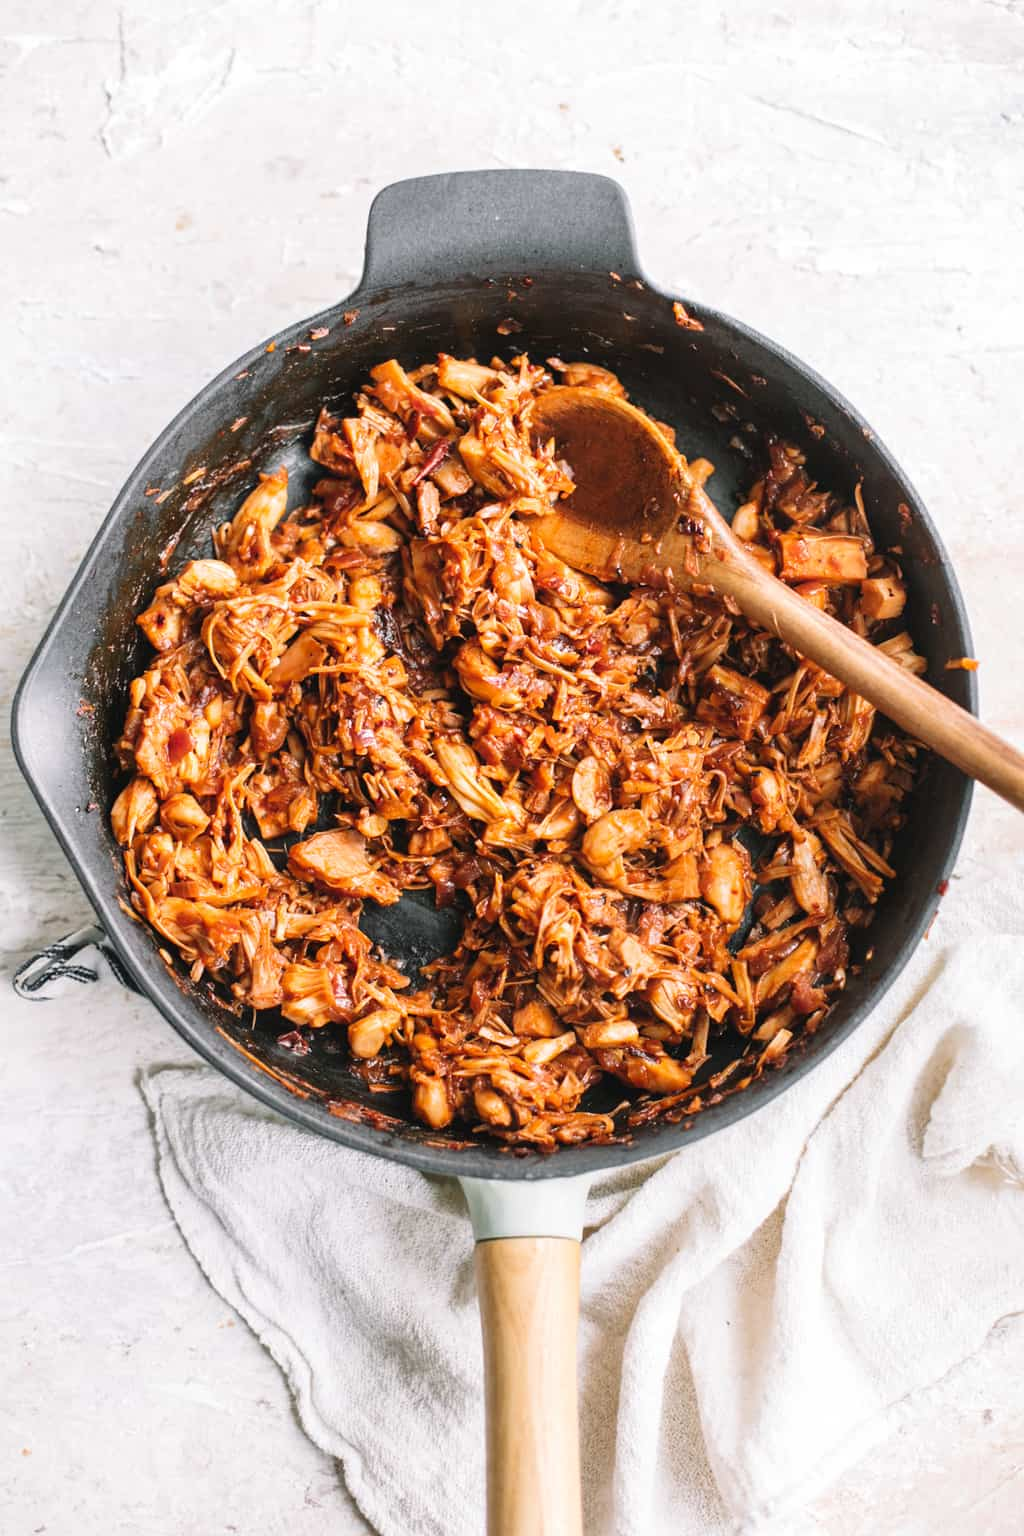 Mexican chipotle BBQ jackfruit taco filling in cast iron skillet with wooden spoon